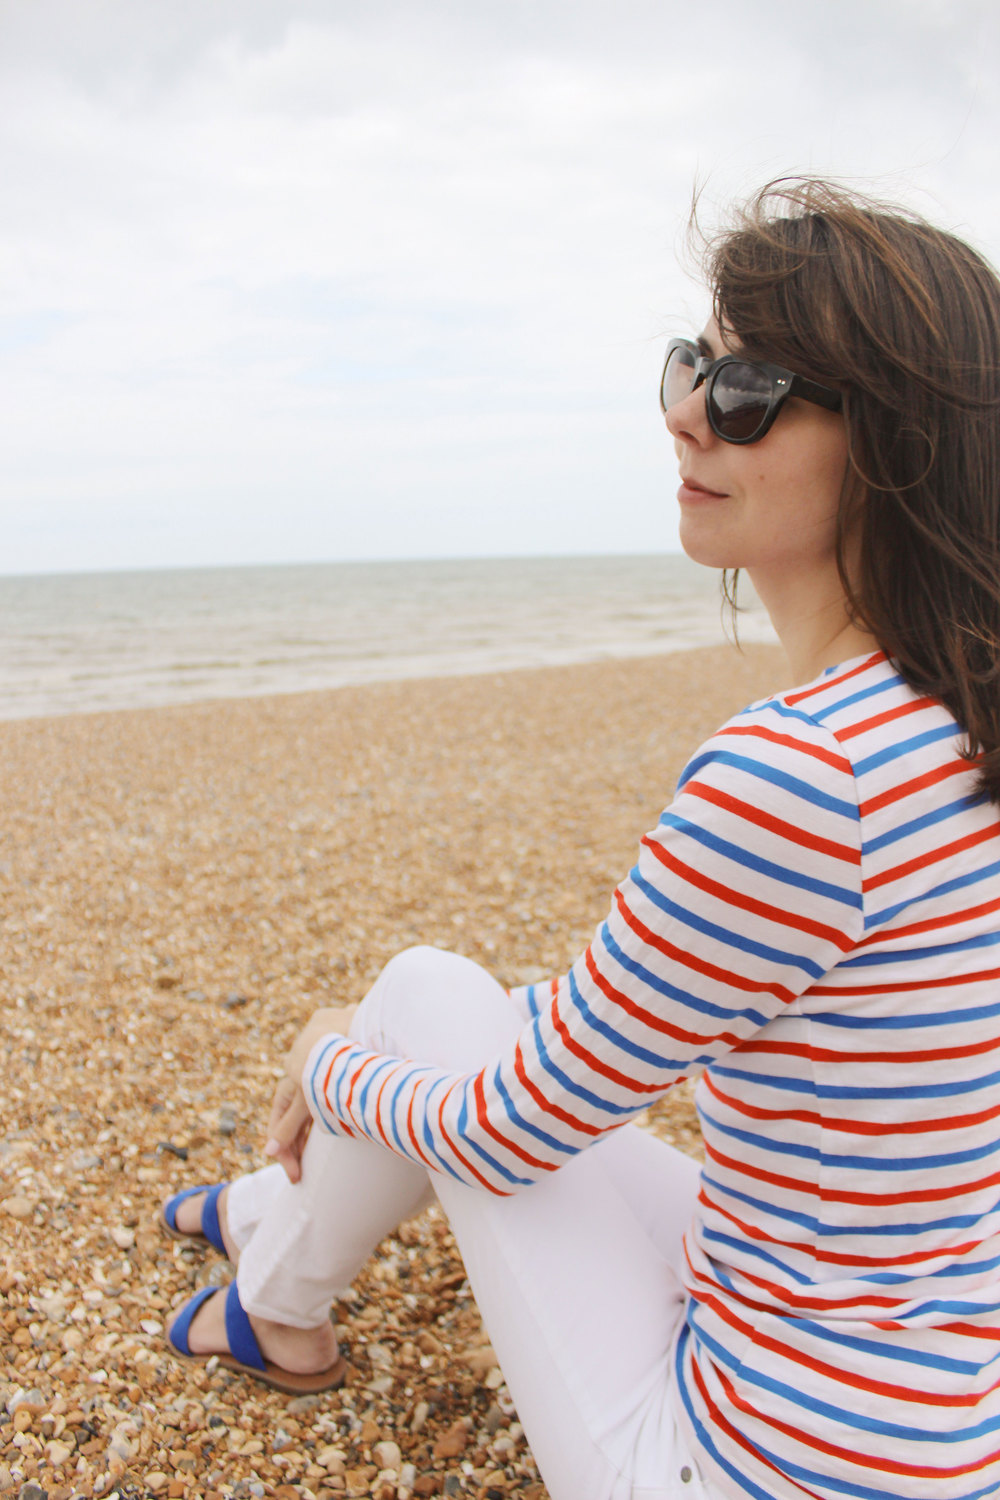 Wearing red, white and blue for a morning in Brighton, England.